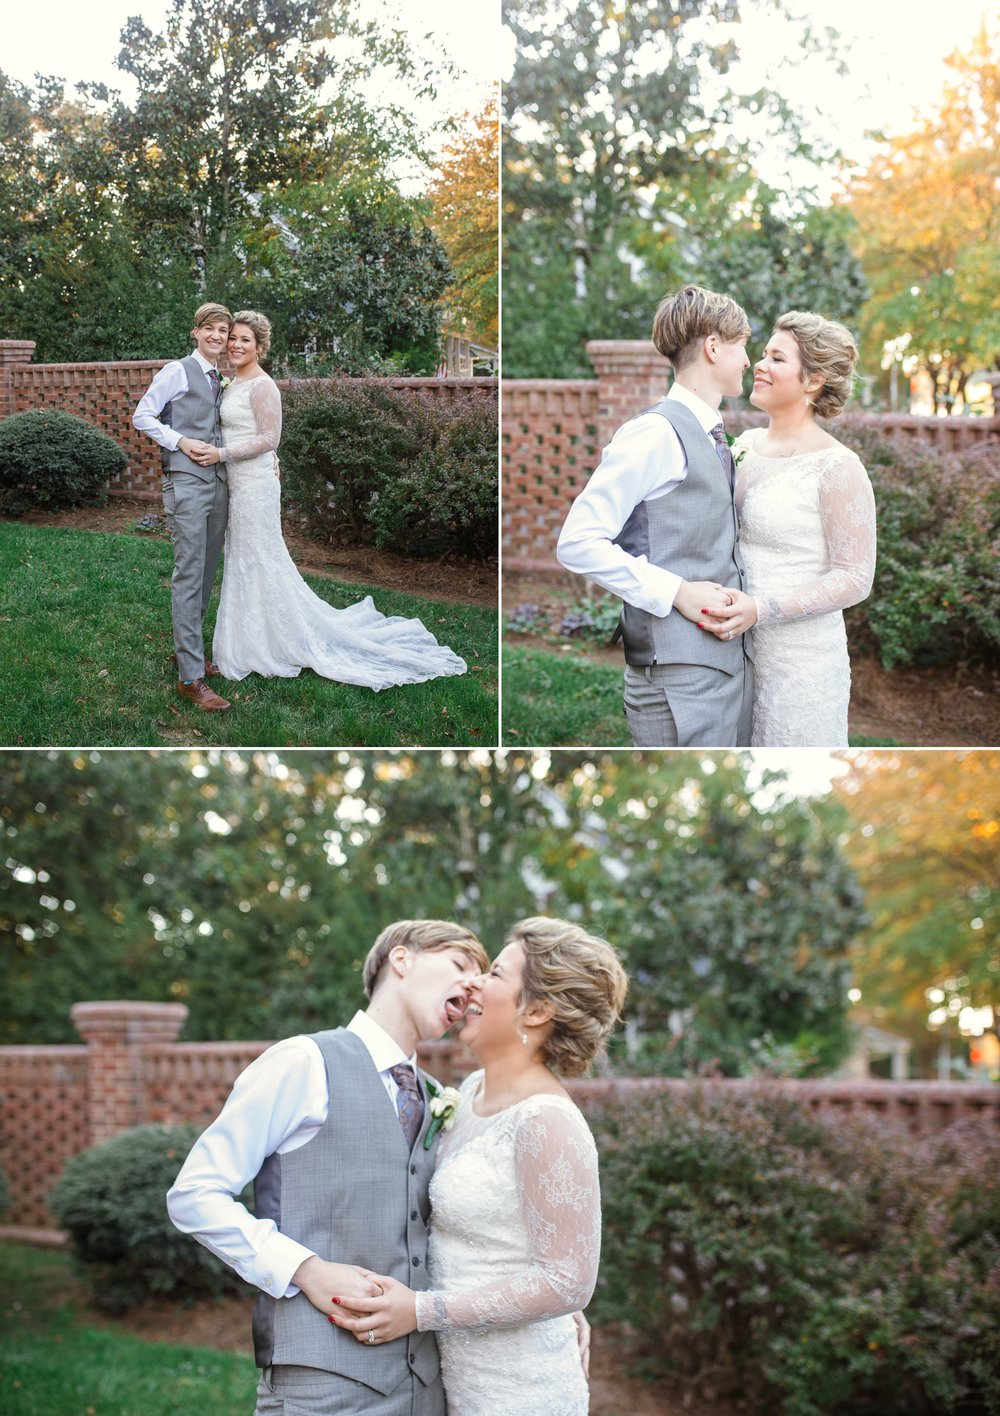 Gay friendly wedding photographer in north carolina